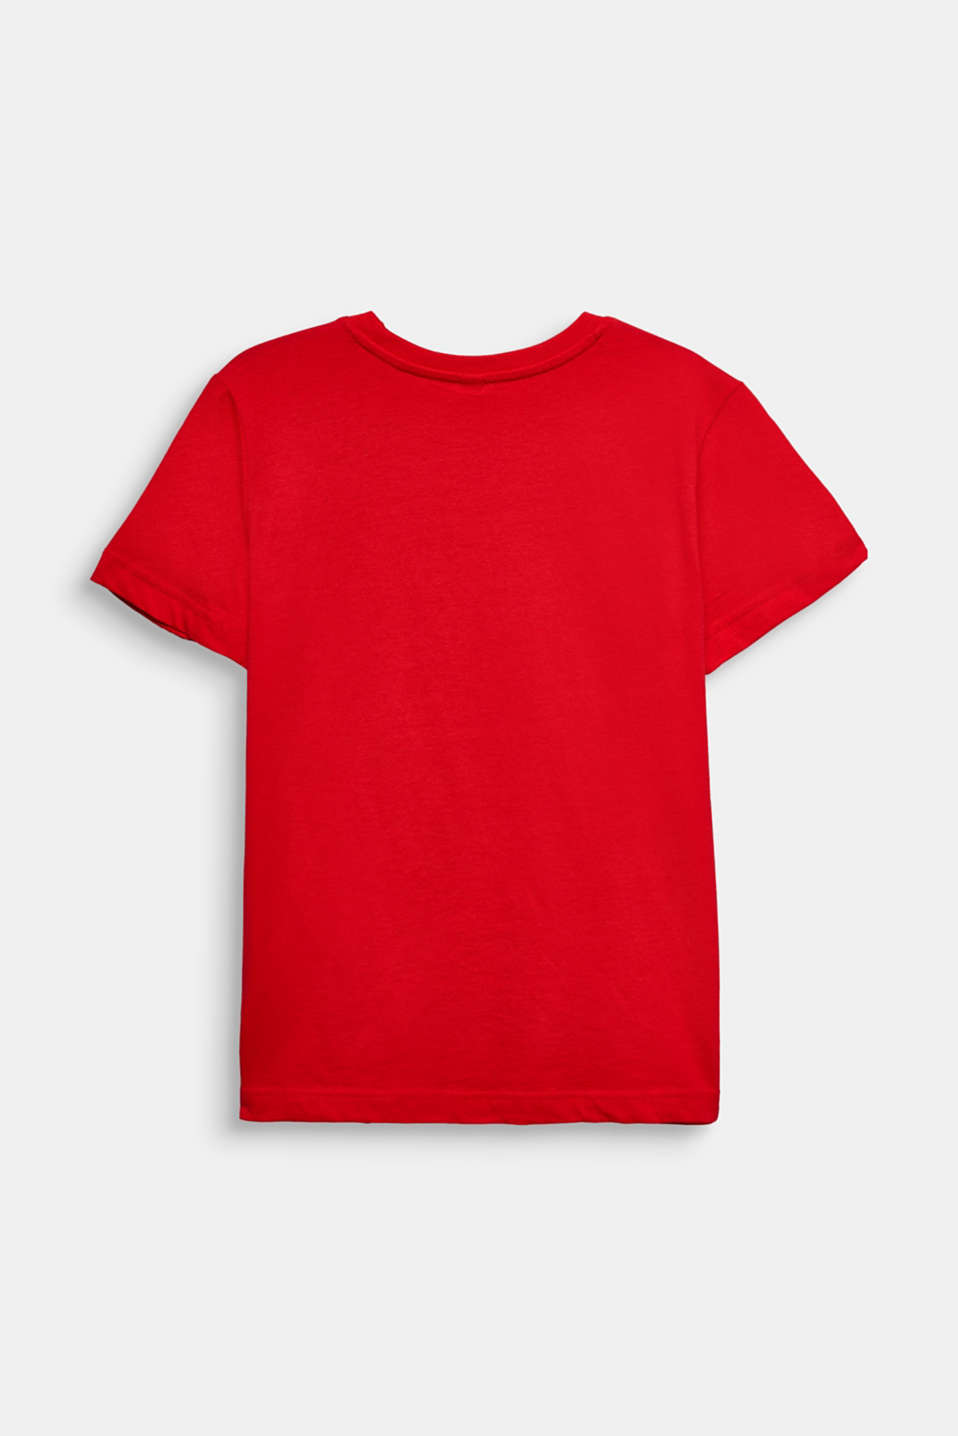 Printed T-shirt, 100% cotton, LCRED, detail image number 1